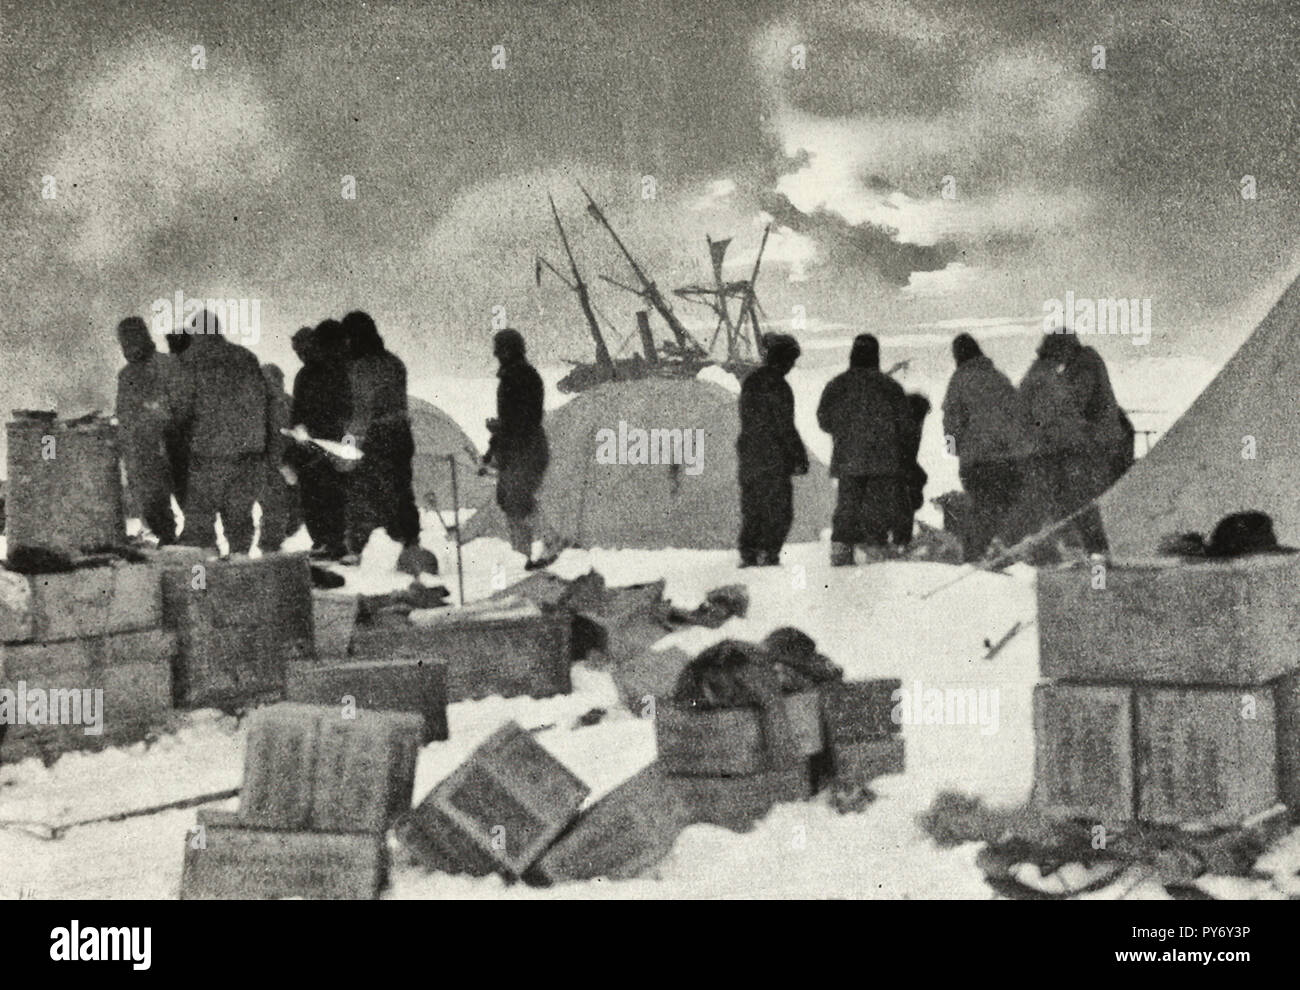 Dump camp - The morning after the disaster to the ship  during the Shackleton expedition - Stock Image